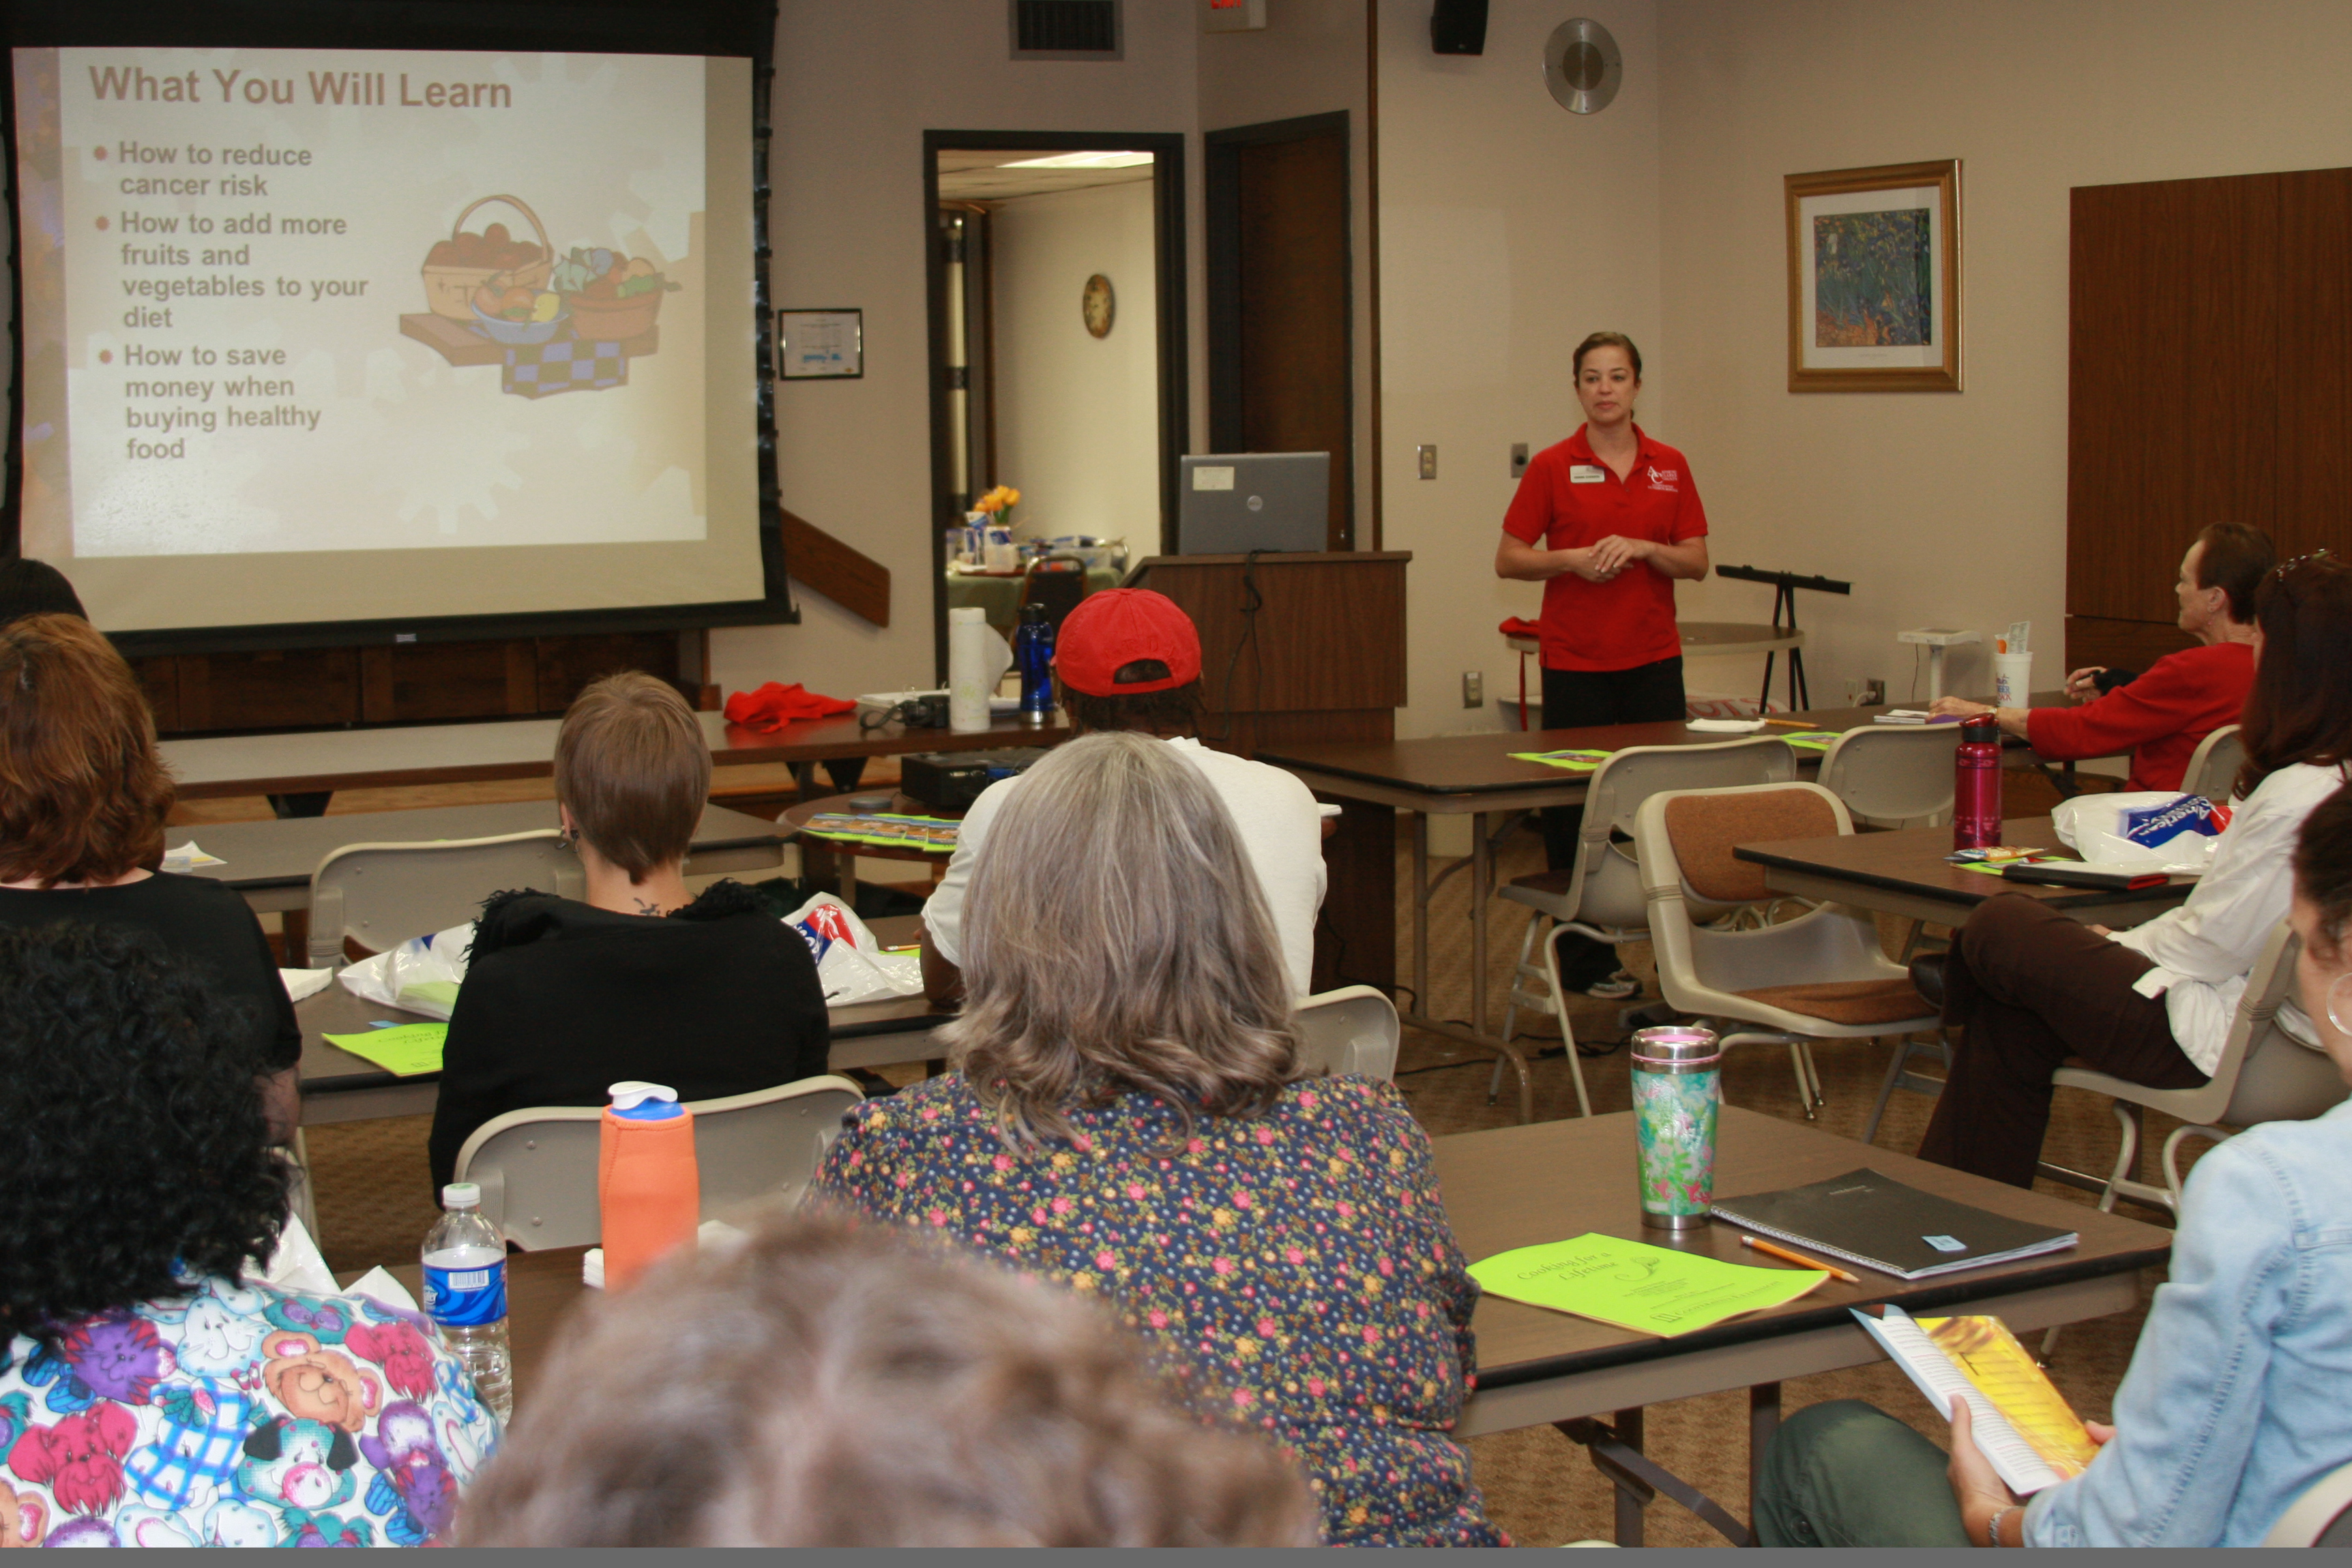 Extension agents, like Denise Everson, offer educational classes to inform the public that healthy lifestyle choices can decrease the risk of cancer.